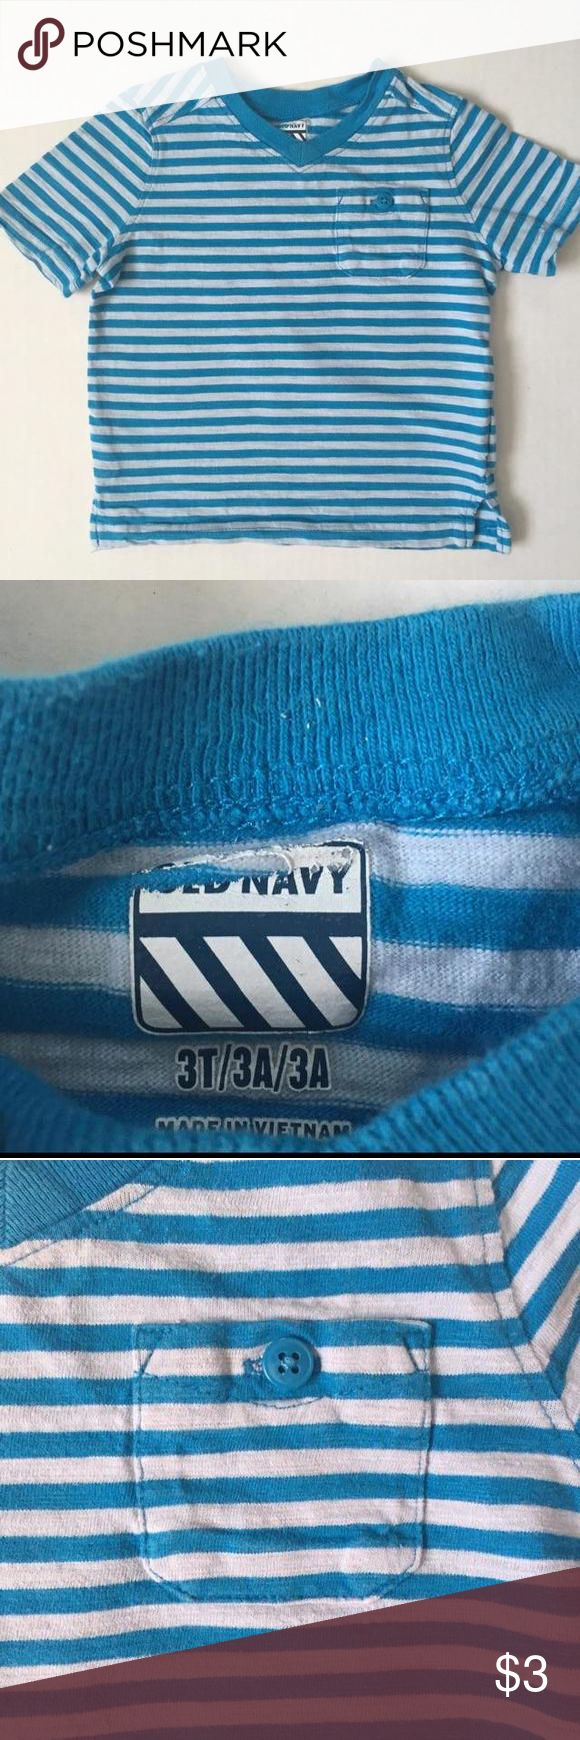 Old Nacy V Neck Turquoise Striped Shirt with Pocket Old Nacy V Neck Turquoise Striped Shirt with Pocket. Great condition! Old Navy Shirts & Tops